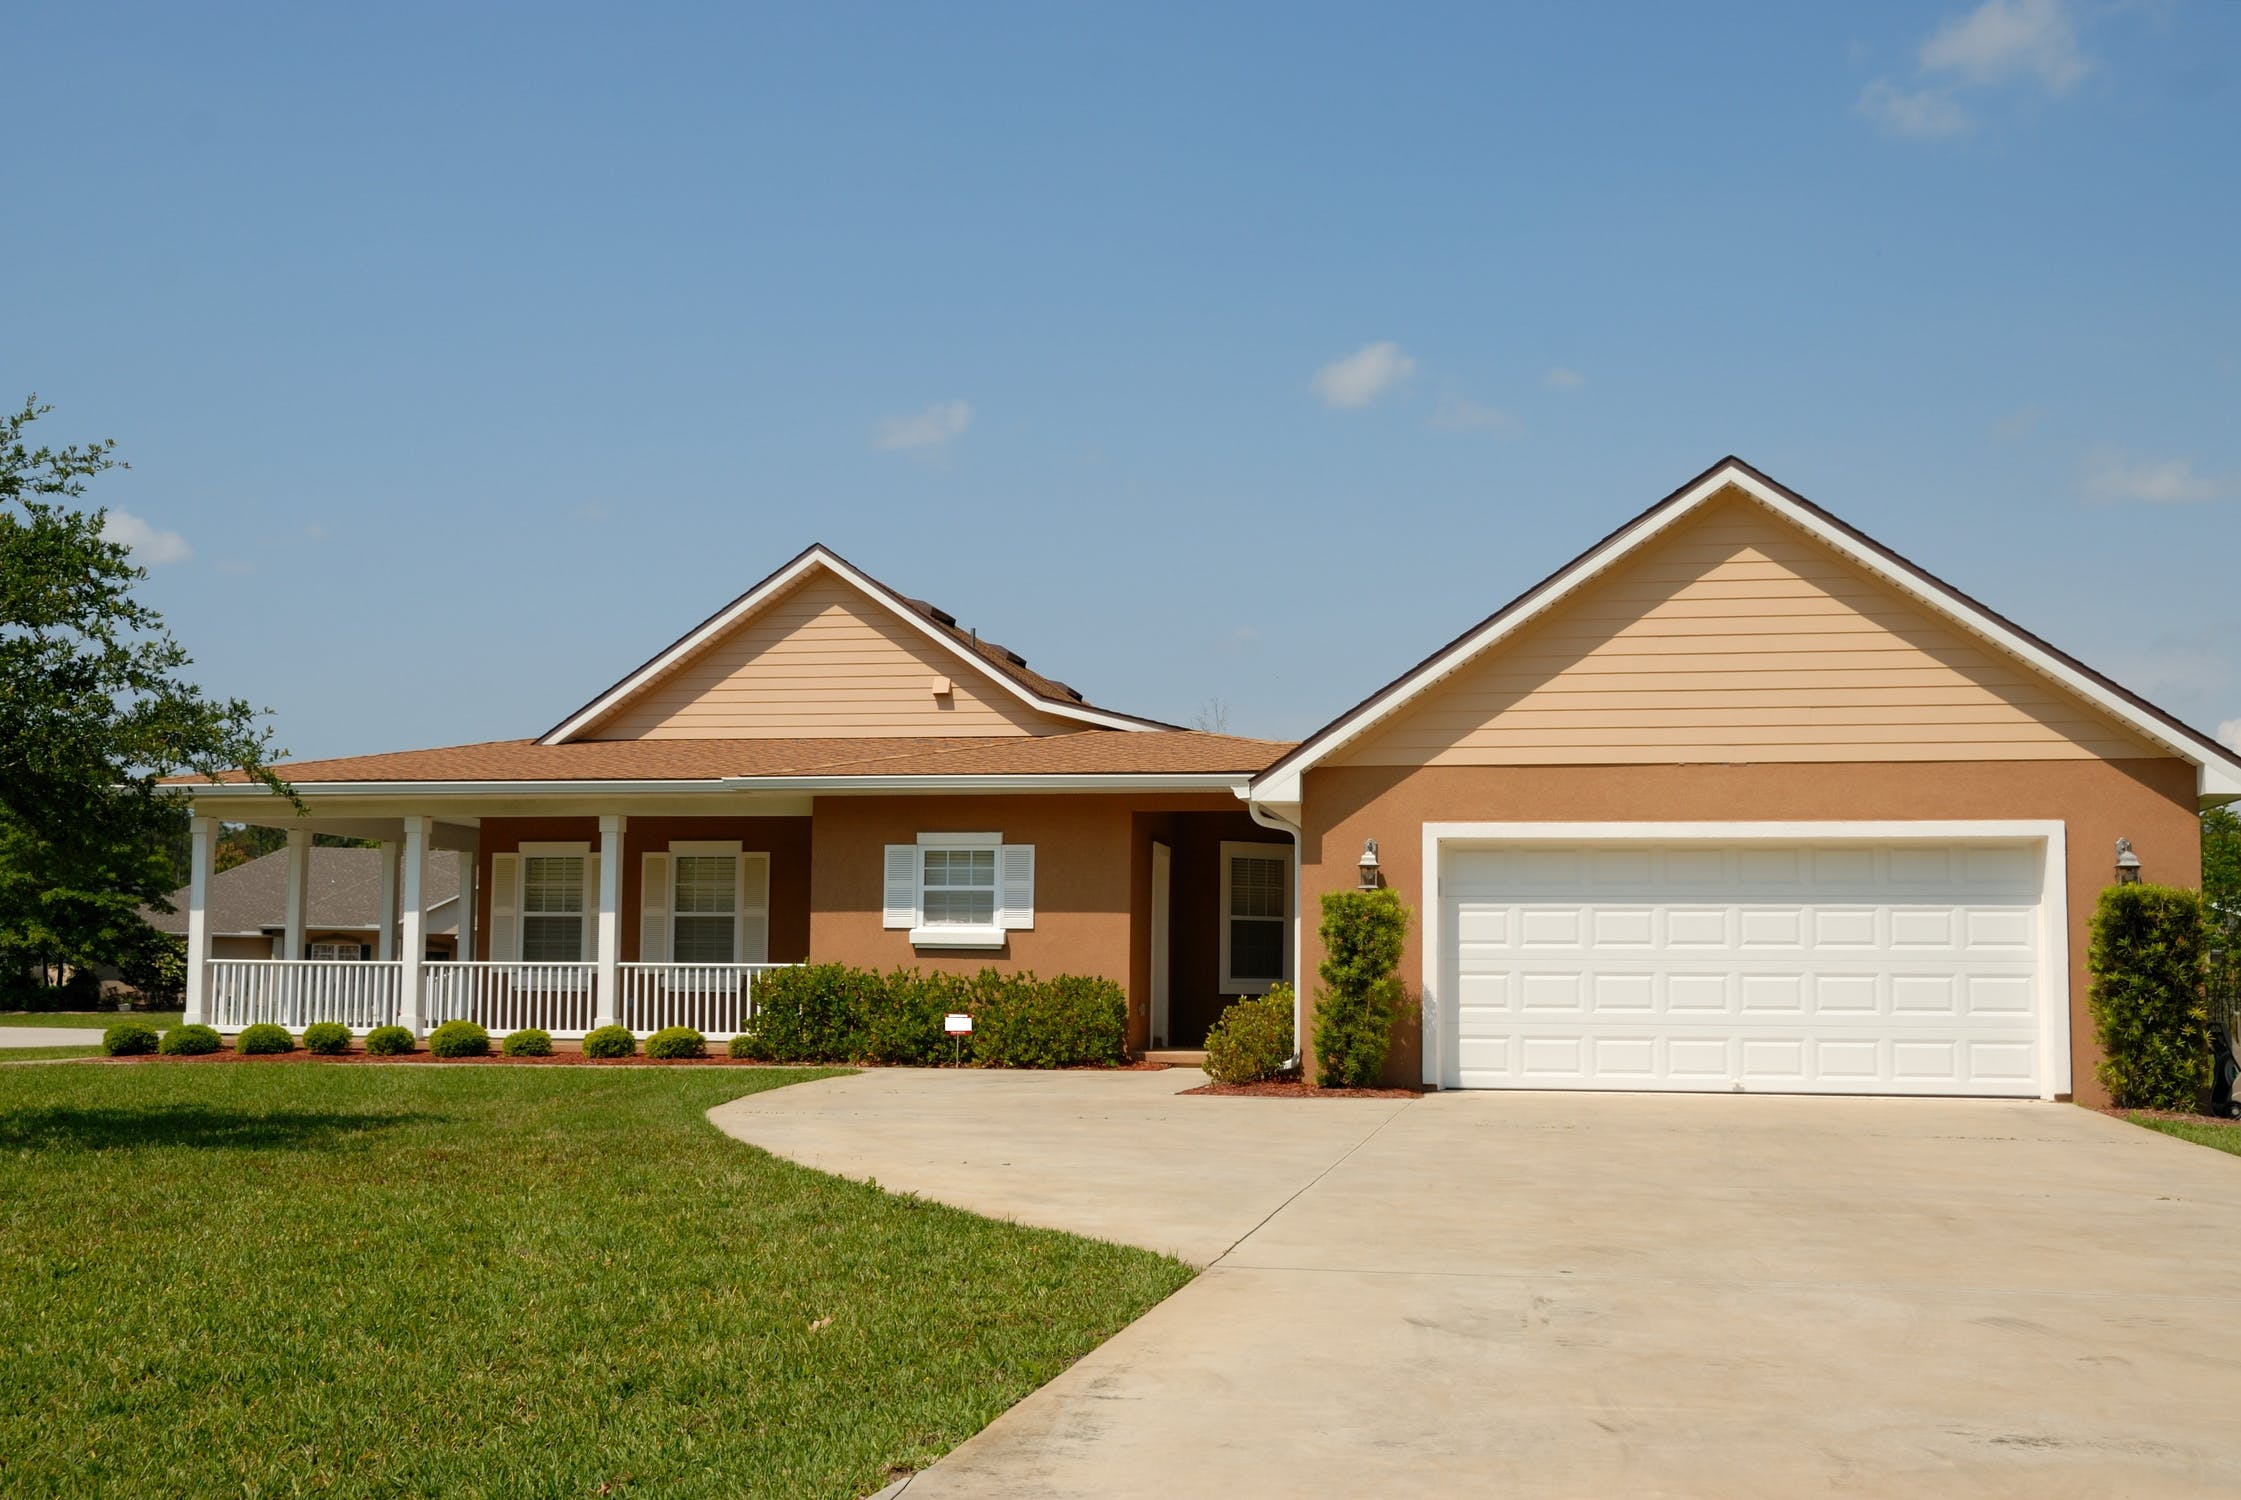 4 Ways New Construction Homes Are Lower Maintenance For First-Time Homeowners